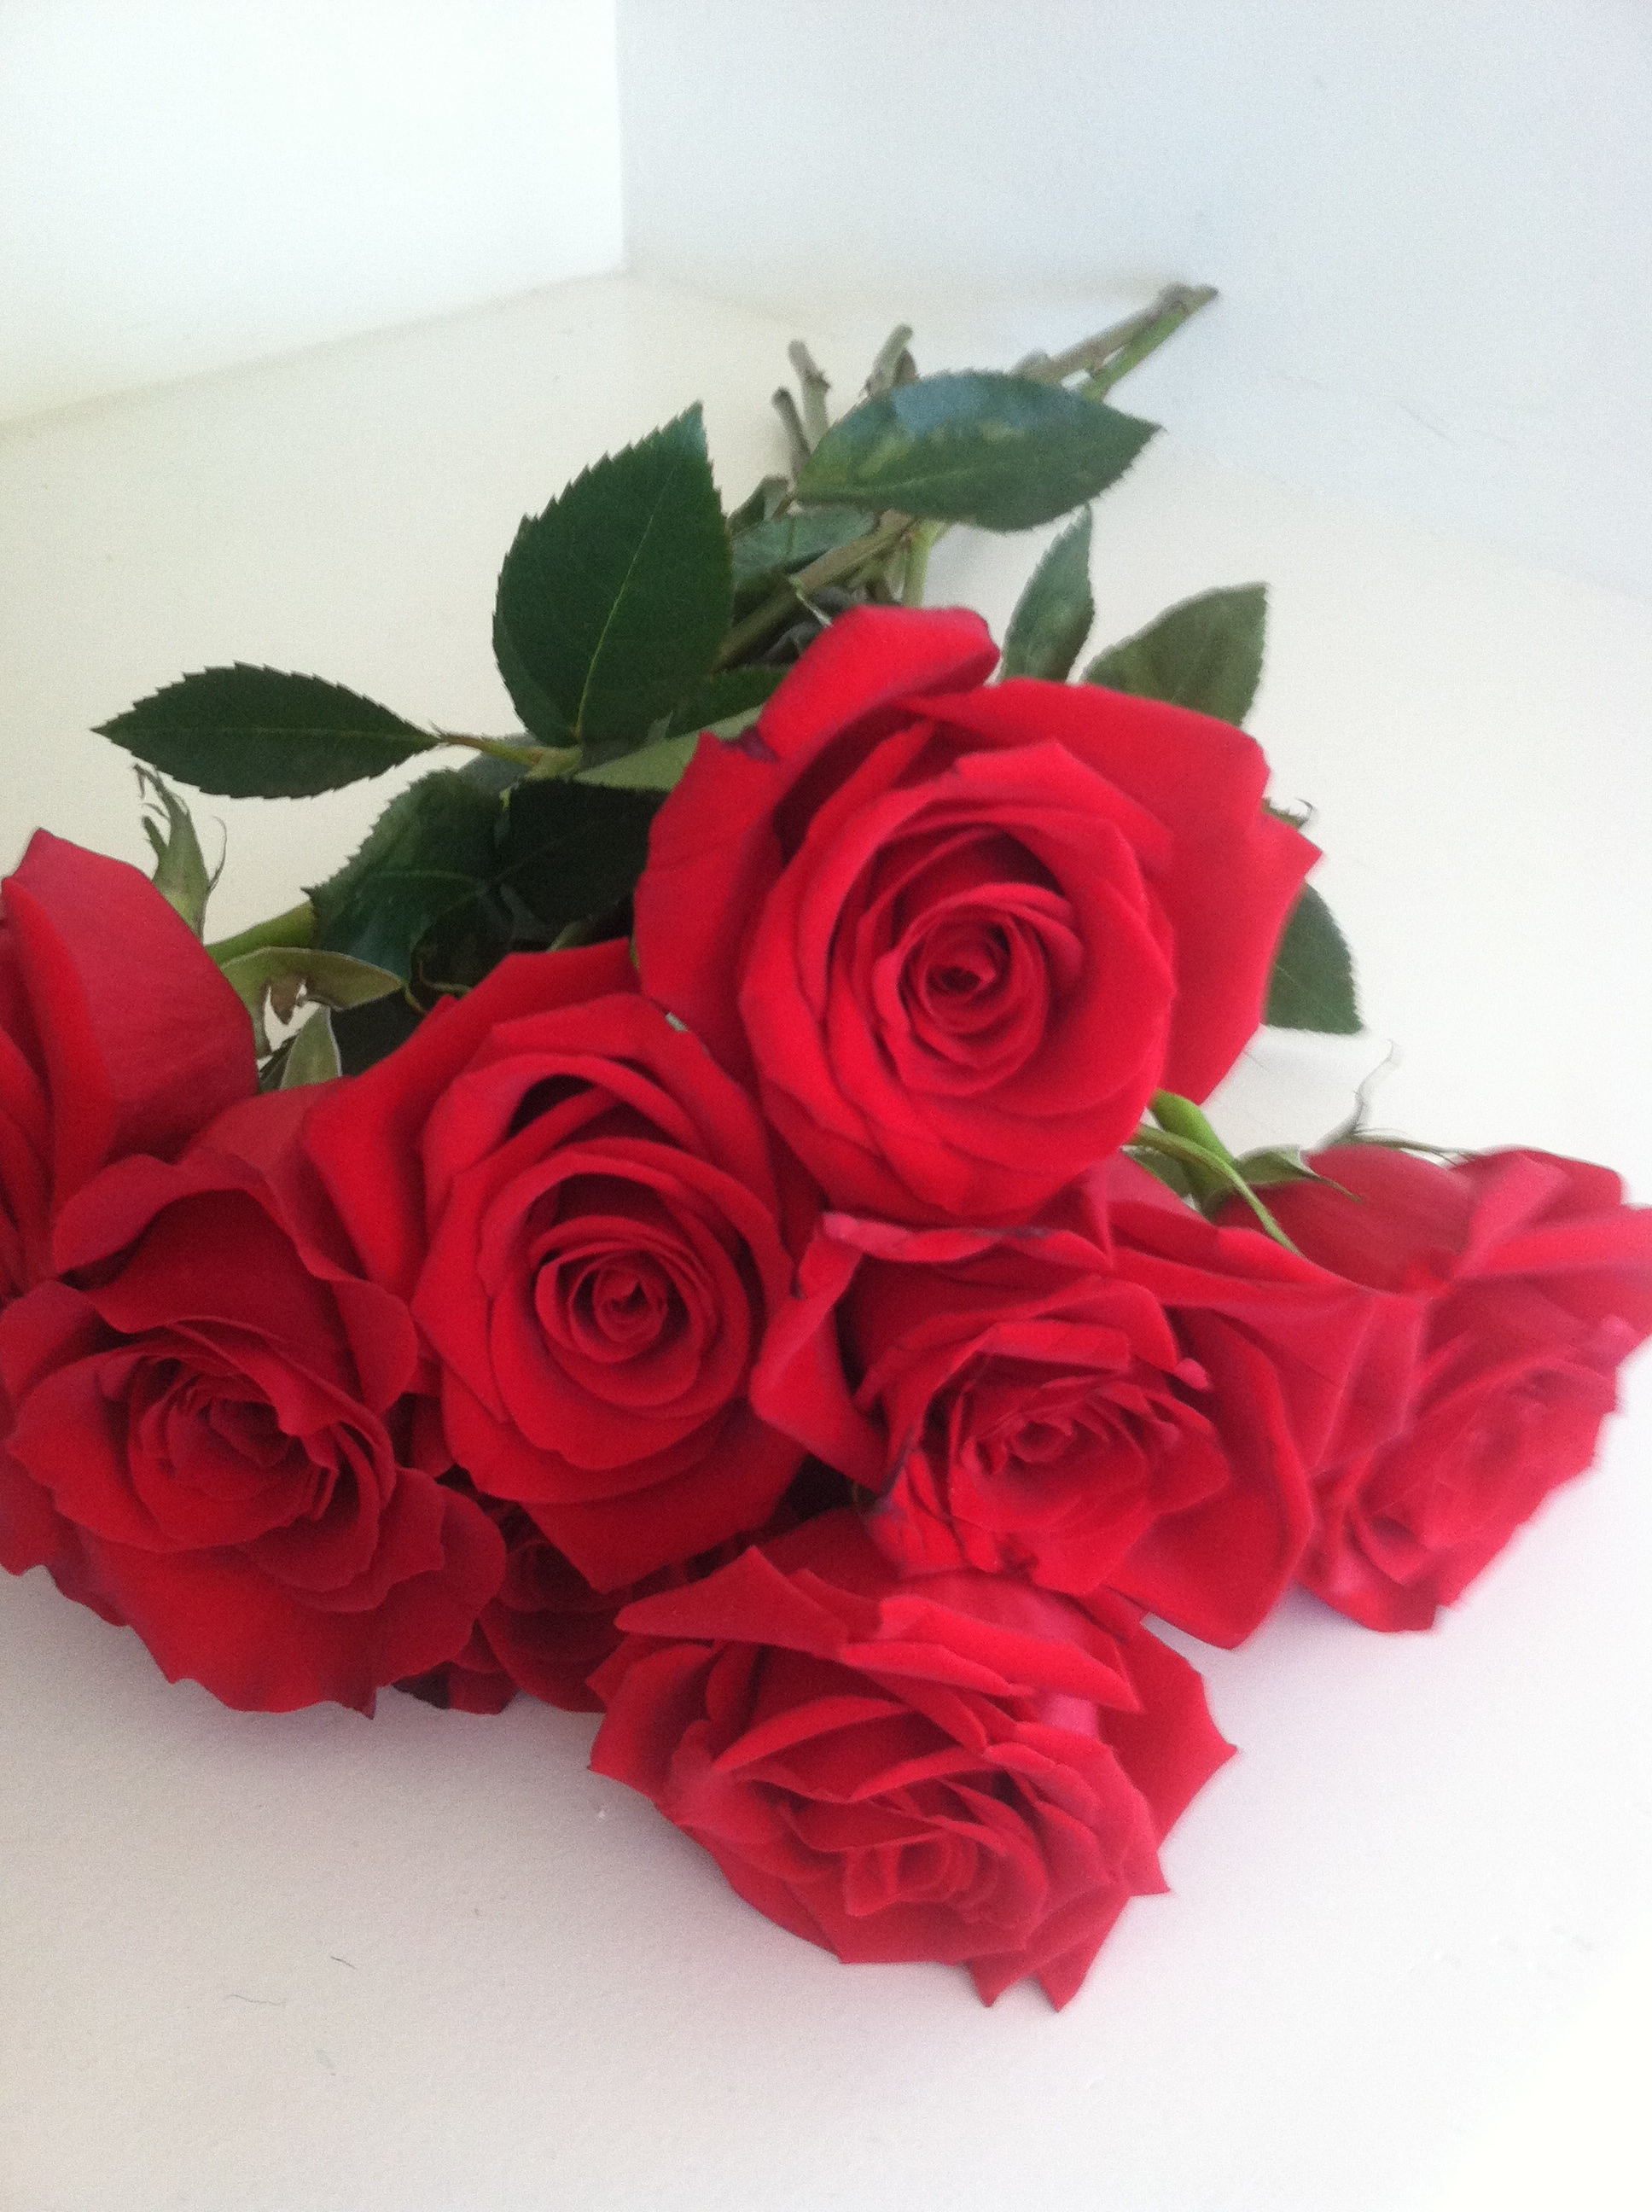 Valentines Day Roses Patient Care.jpg